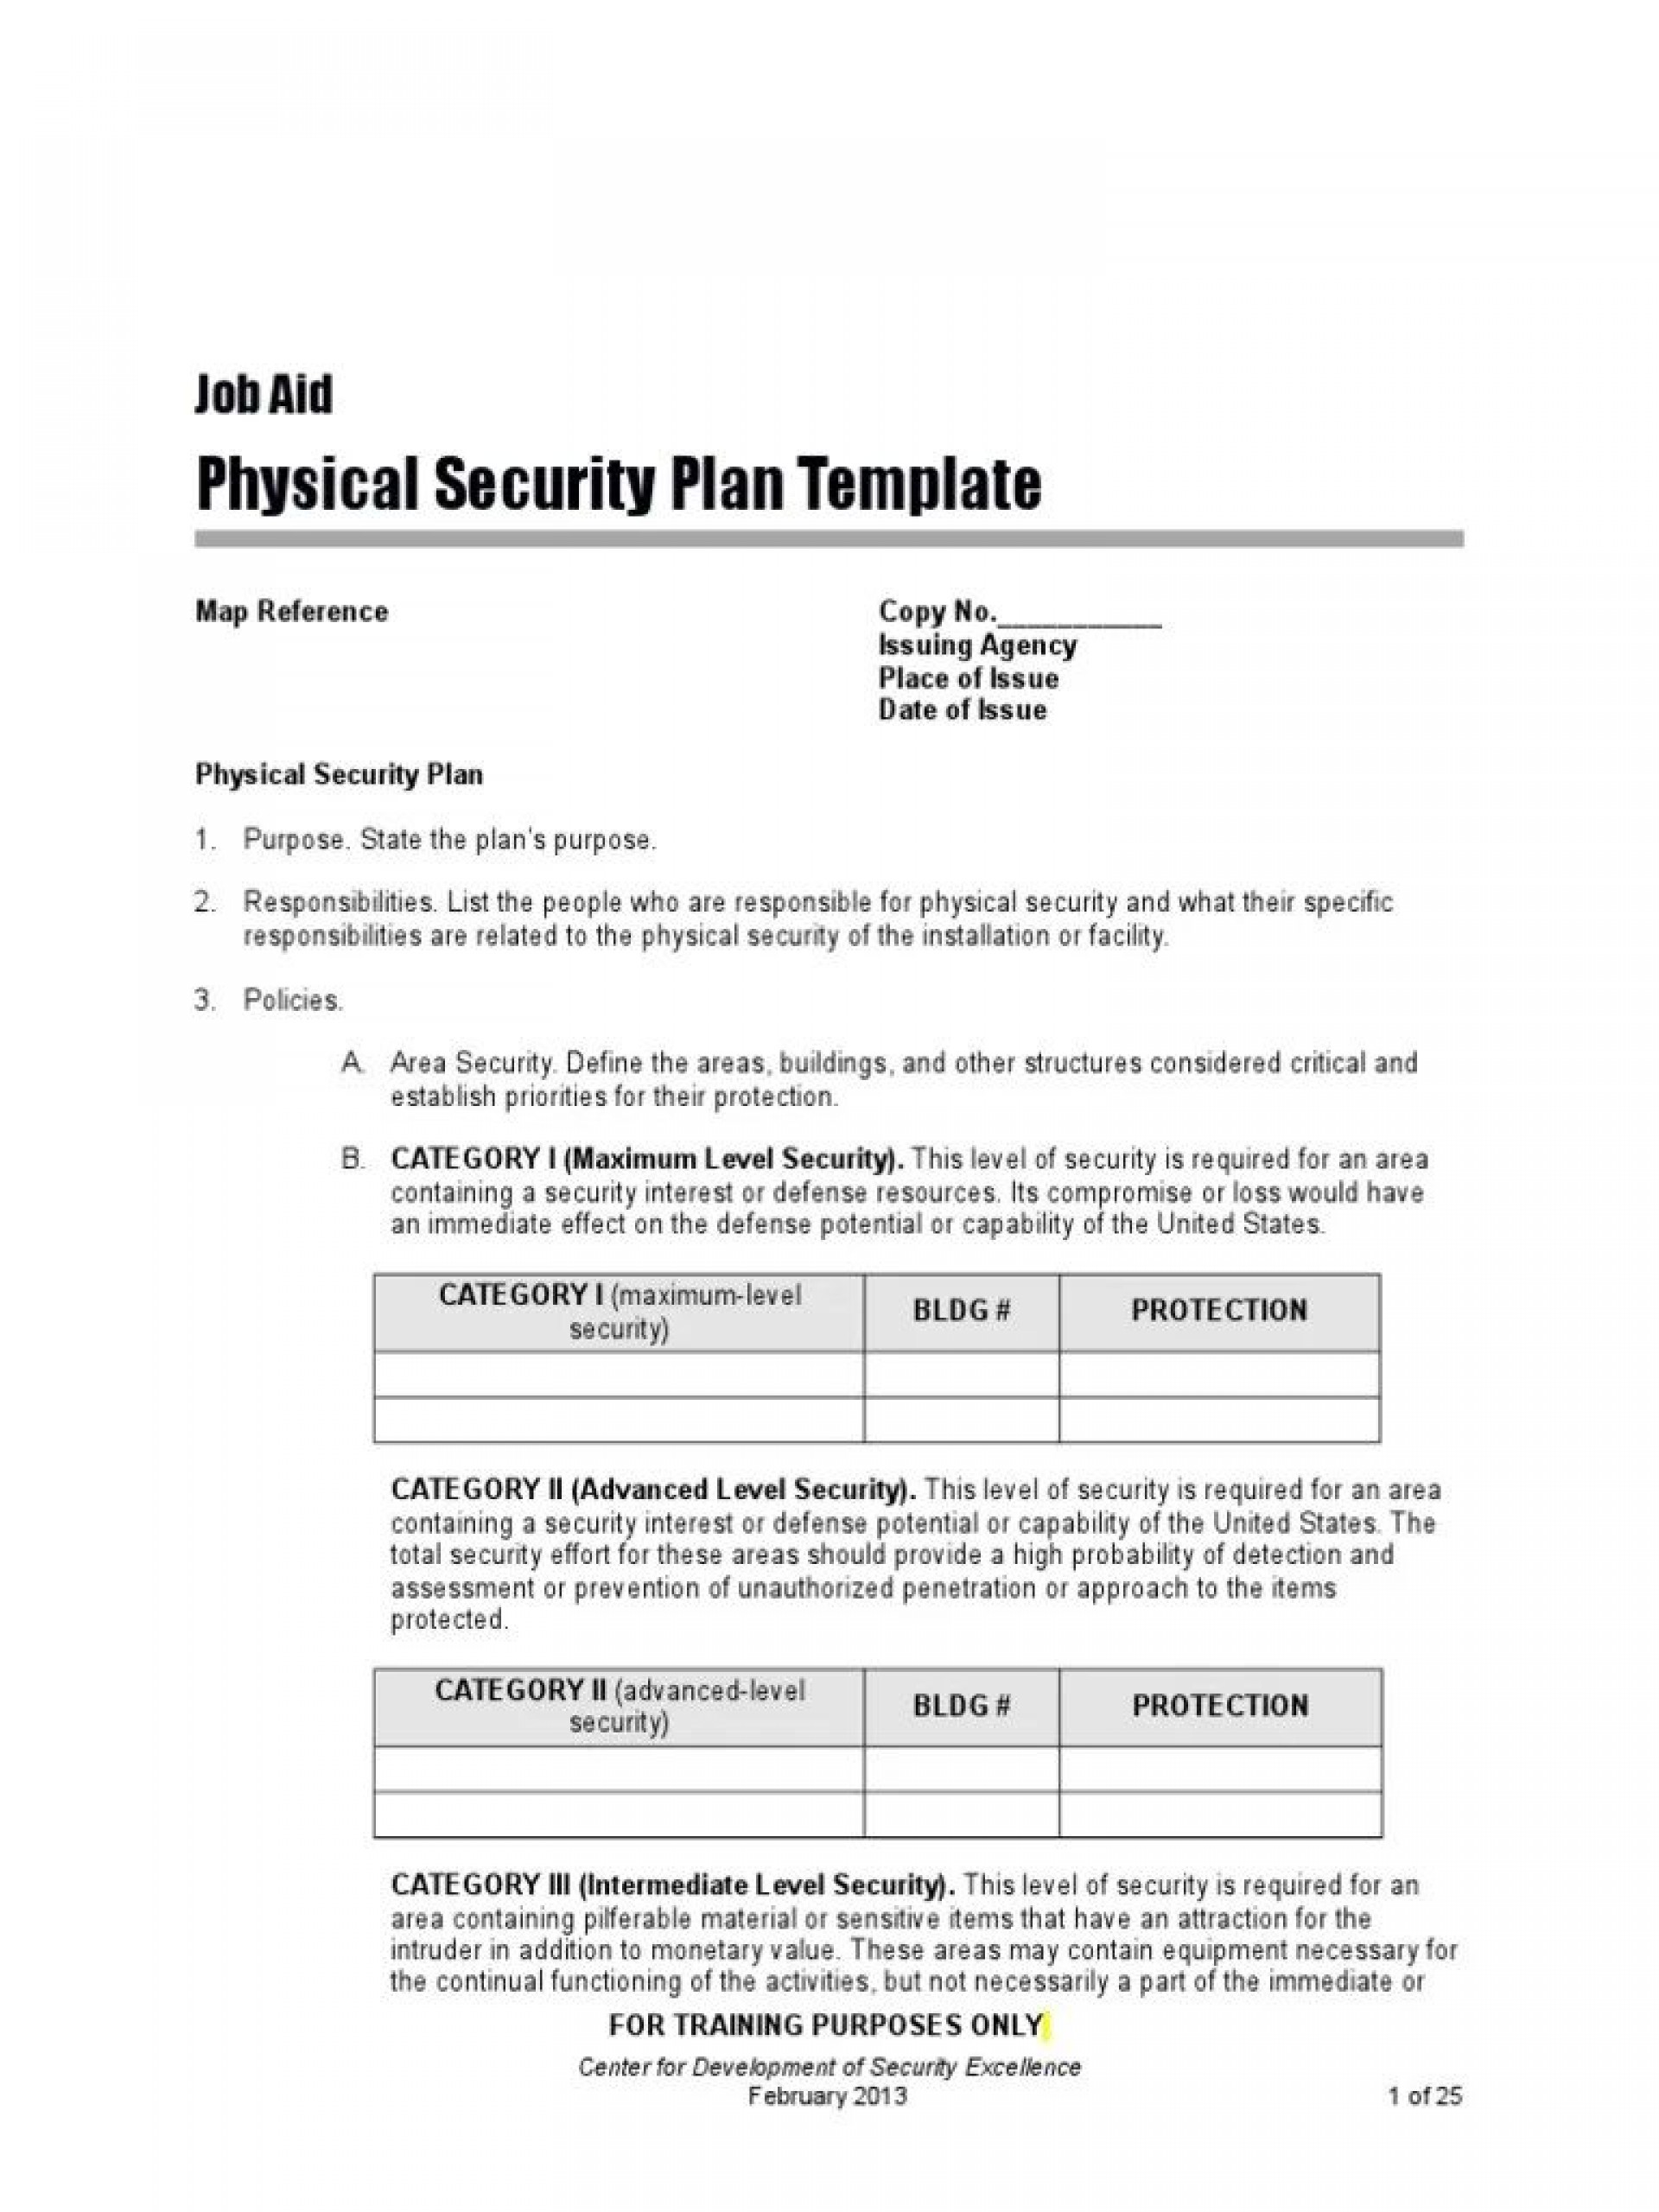 Physical Security Policy Template Addictionary